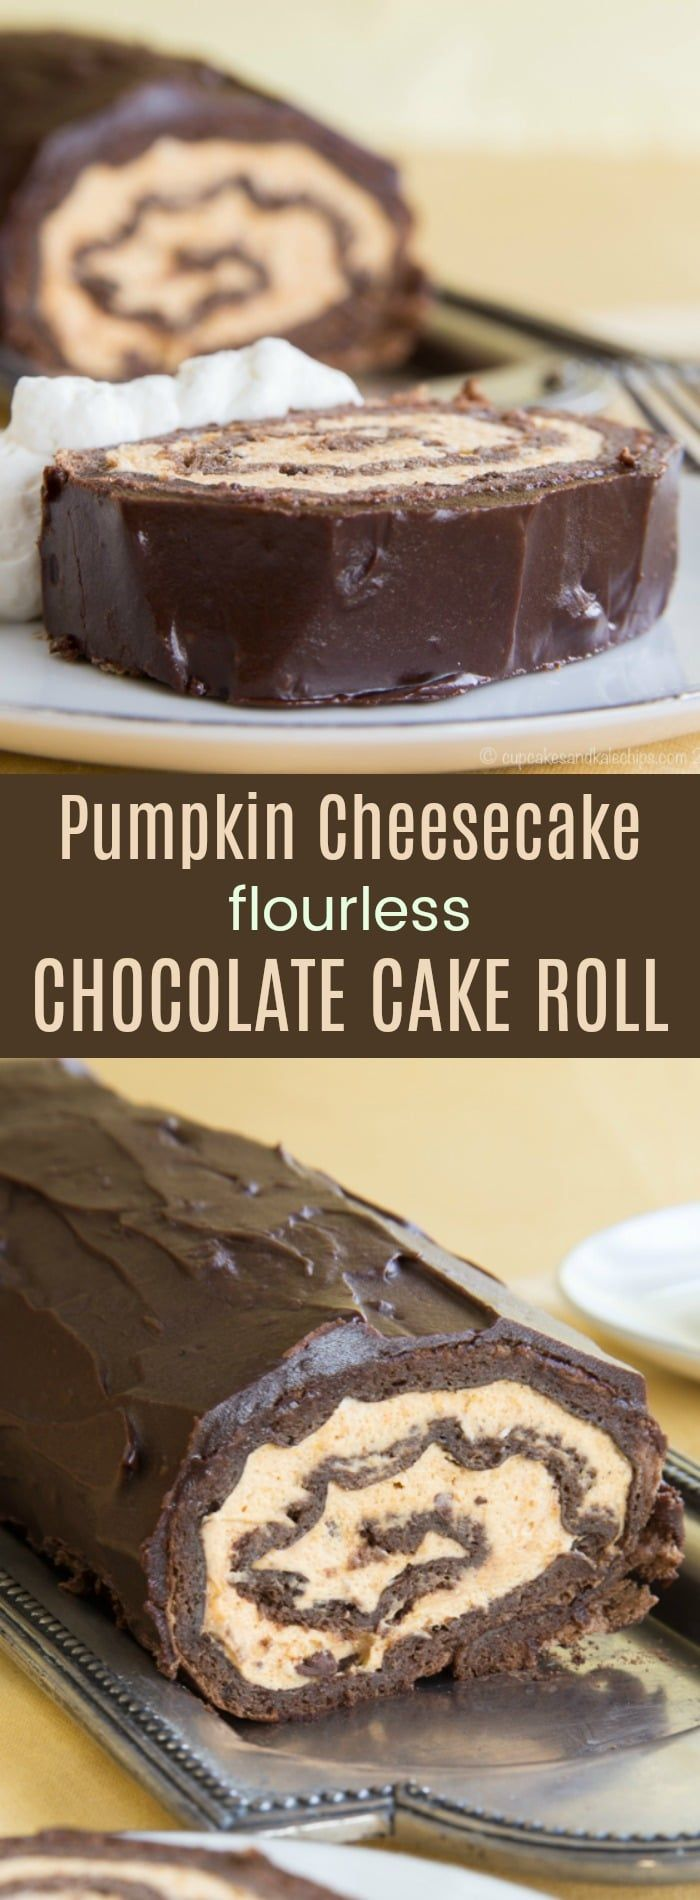 Pumpkin Cheesecake Flourless Chocolate Cake Roll - an impressive but easy dessert recipe for fall. Pumpkin mousse is rolled in a gluten free chocolate cake and topped with chocolate ganache.